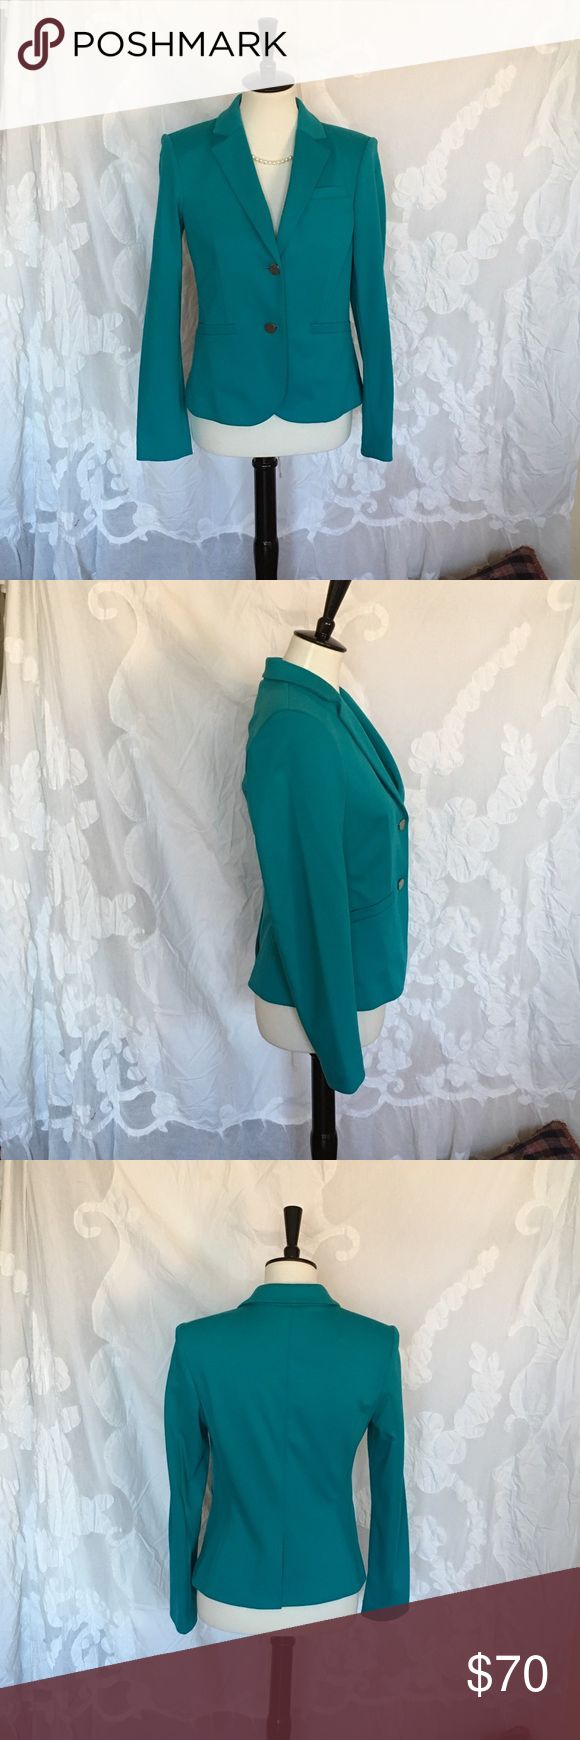 CK turquoise blazer pop of colour! size 8 My offering is for a beautiful CK blazer. Purchased with mom on a whim. Like new condition. Size 8. One button has some scratches (in photo) Otherwise, no flaws. It's so cheery and would add a pop of colour to your outfit! Calvin Klein Jackets & Coats Blazers